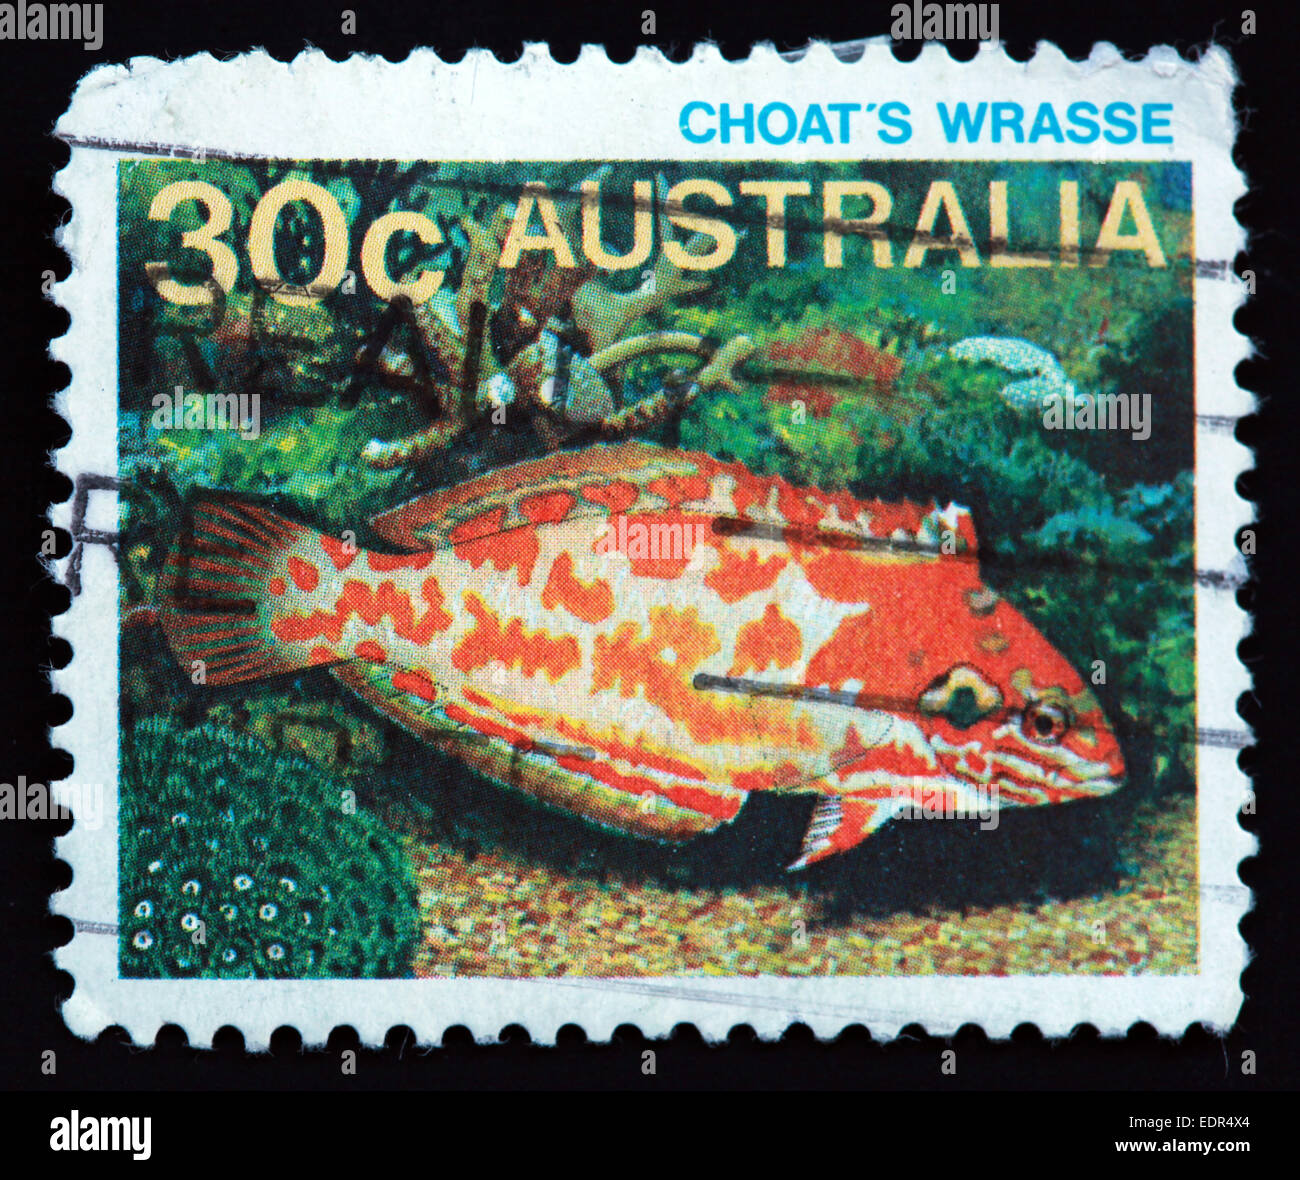 Used and postmarked Australia / Austrailian Stamp Choat's Wrasse - Stock Image